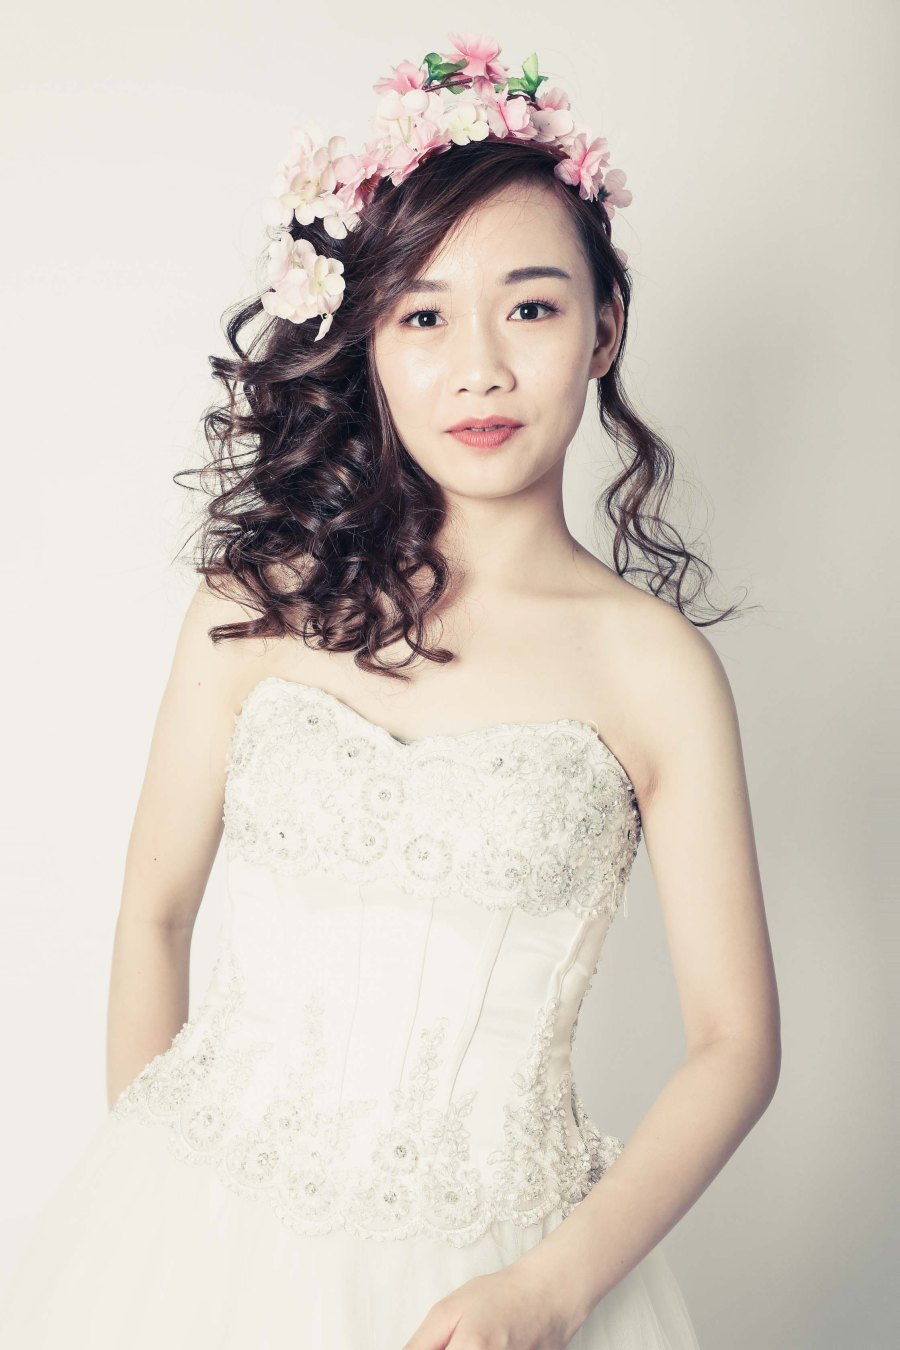 韓式新娘化妝髮型攝影_bridal_wedding_Korea_makeup_hairstyling_Top_MUA_paulstylist_photography_hk_abby-4